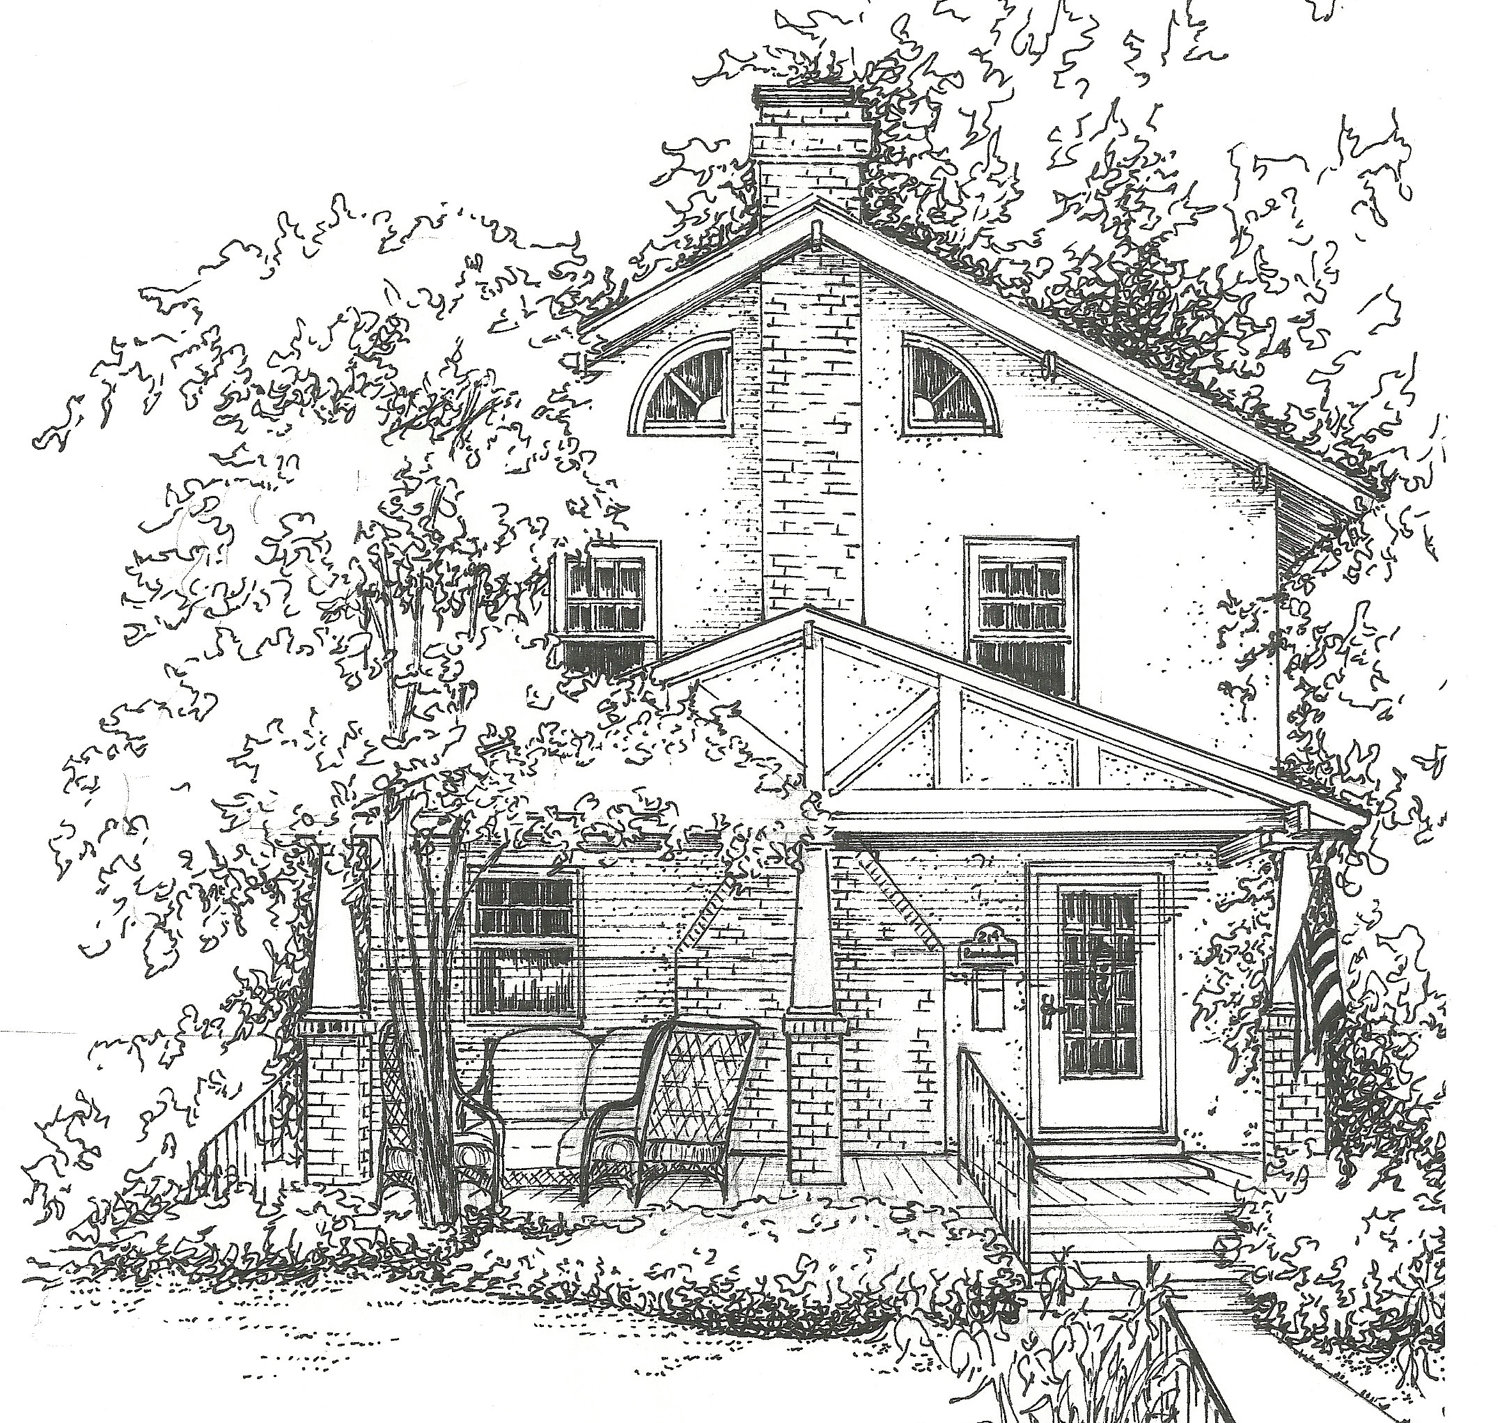 Drawn house hand drawn Of Drawing House your House